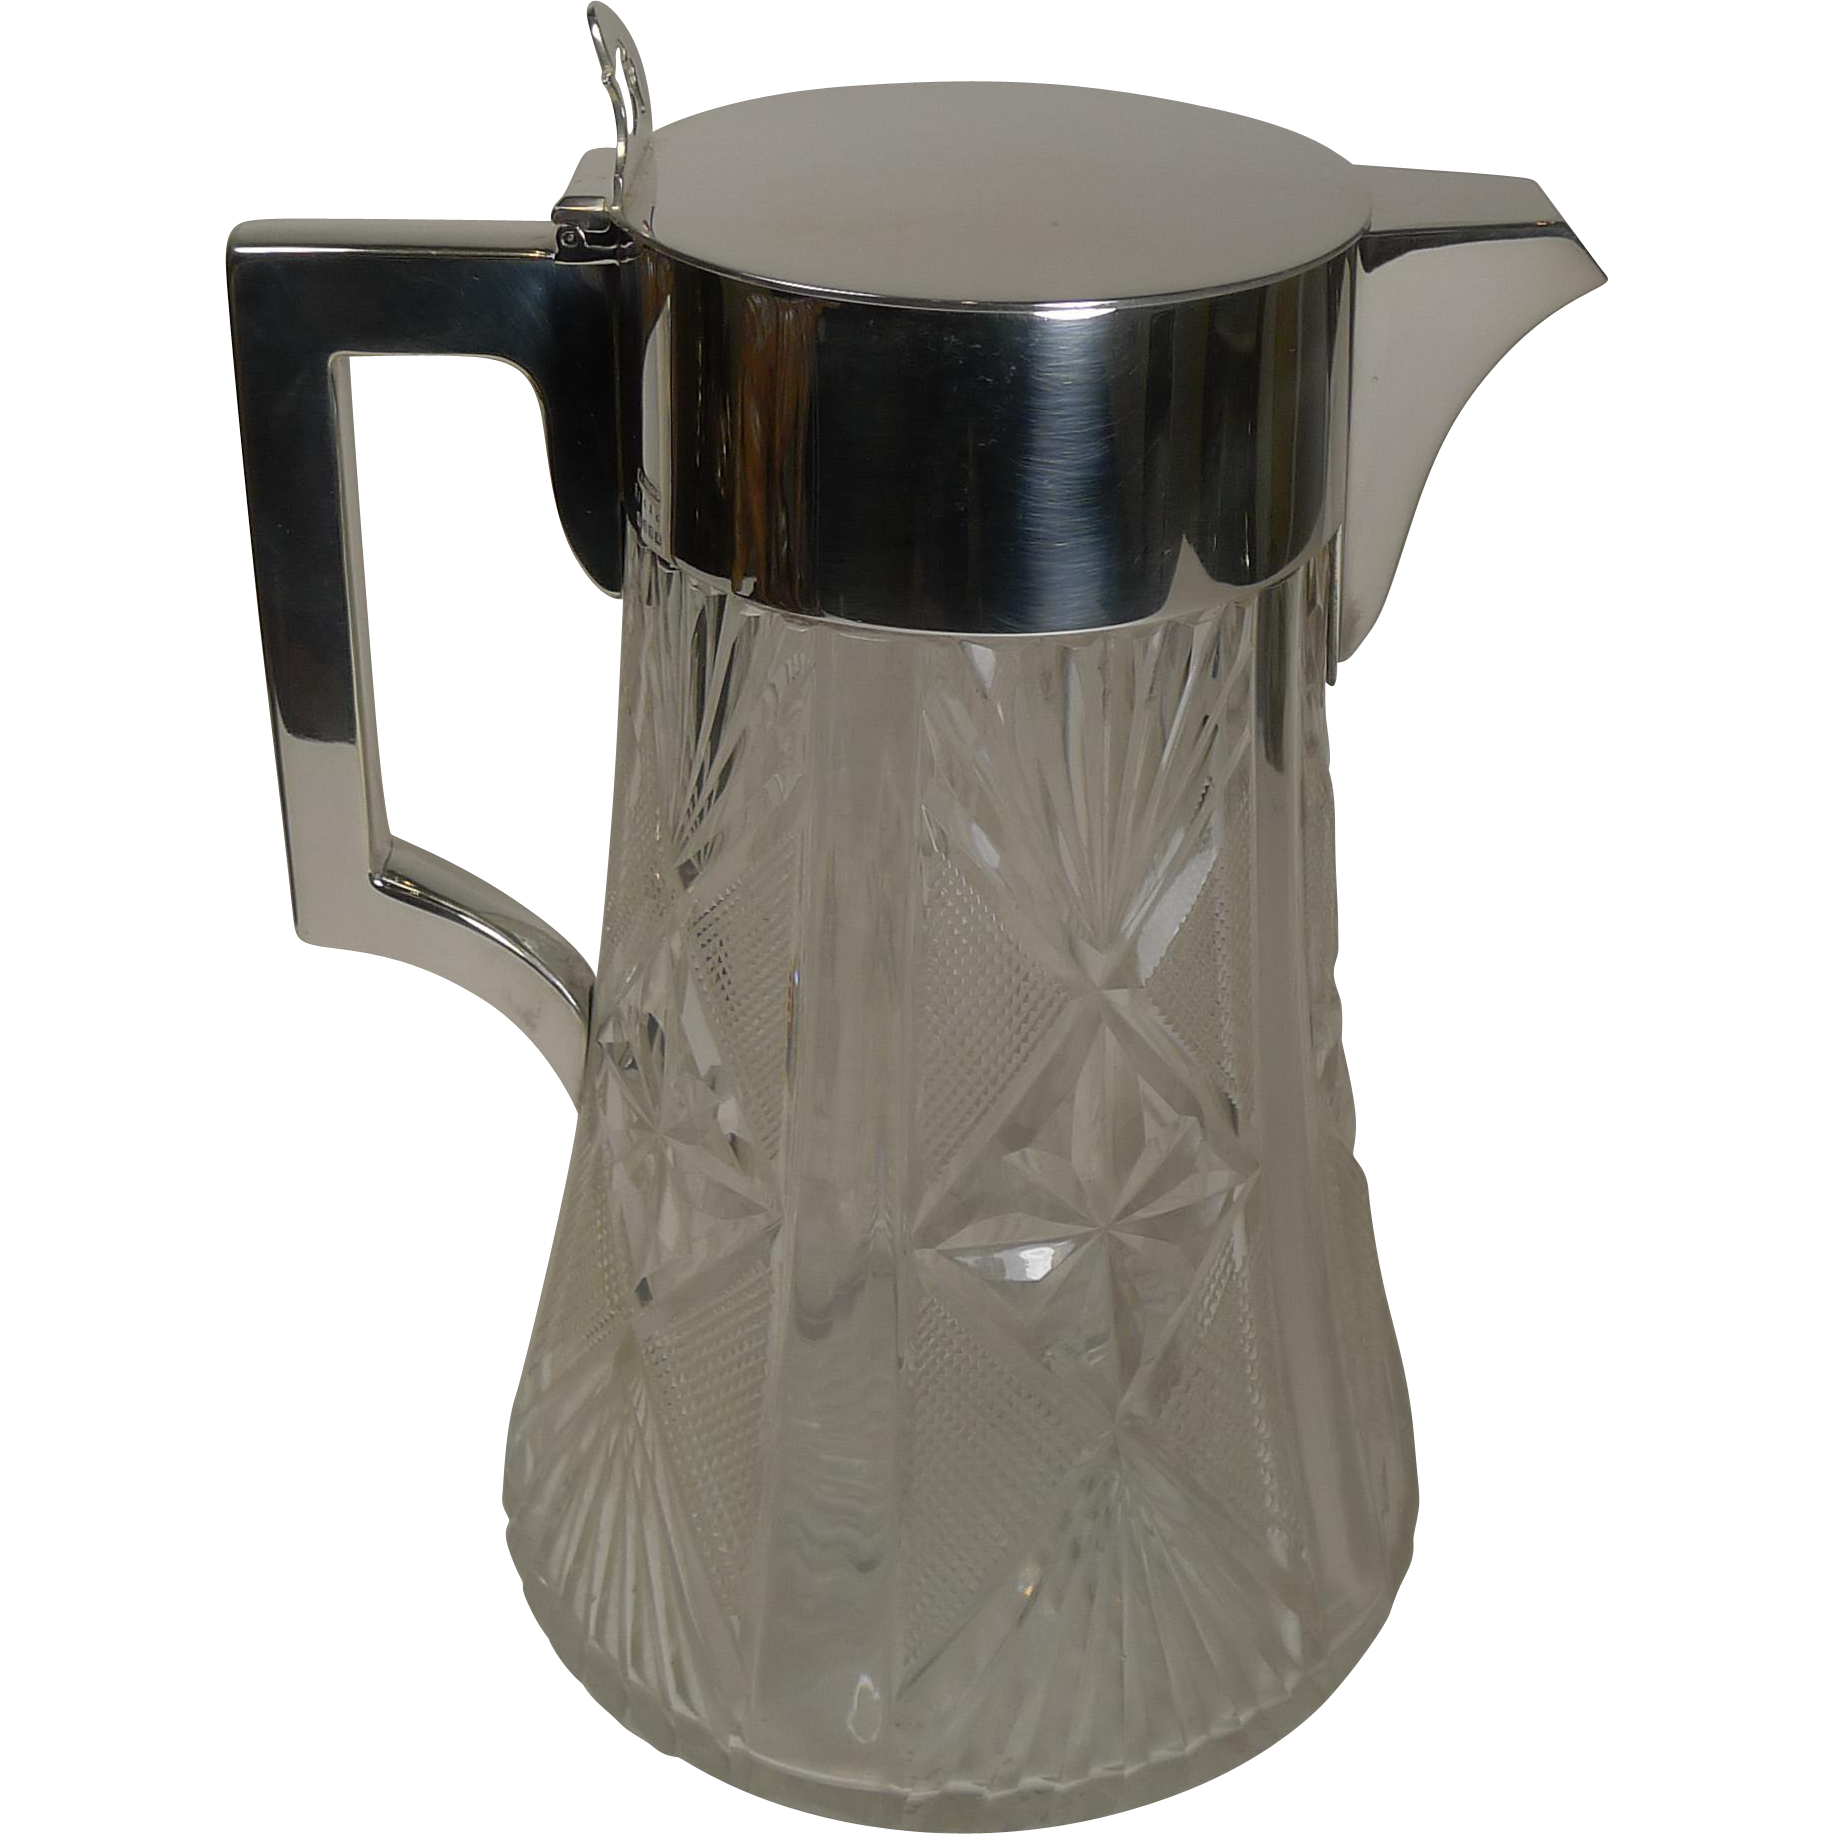 Antique English Cut Crystal and Silver Plated Lemonade or Pimms Jug / Pitcher c.1900